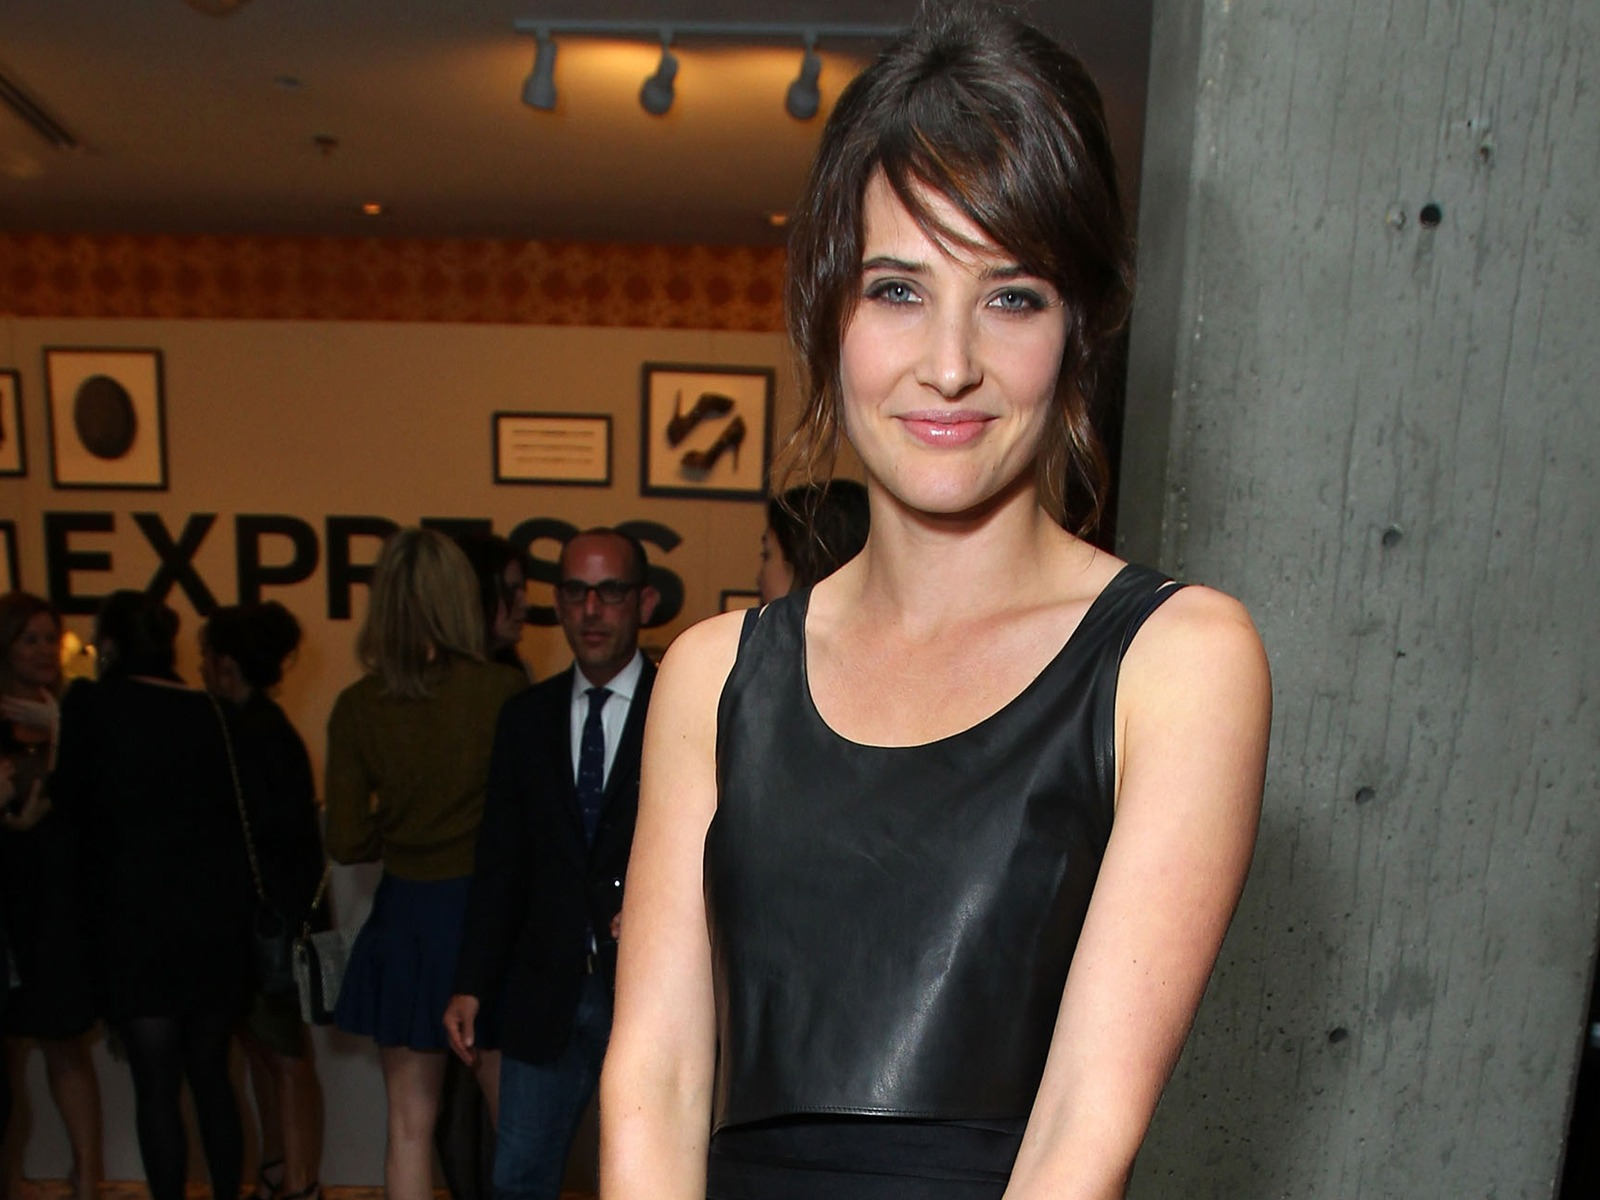 Cobie Smulders #014 - 1600x1200 Wallpapers Pictures Photos Images